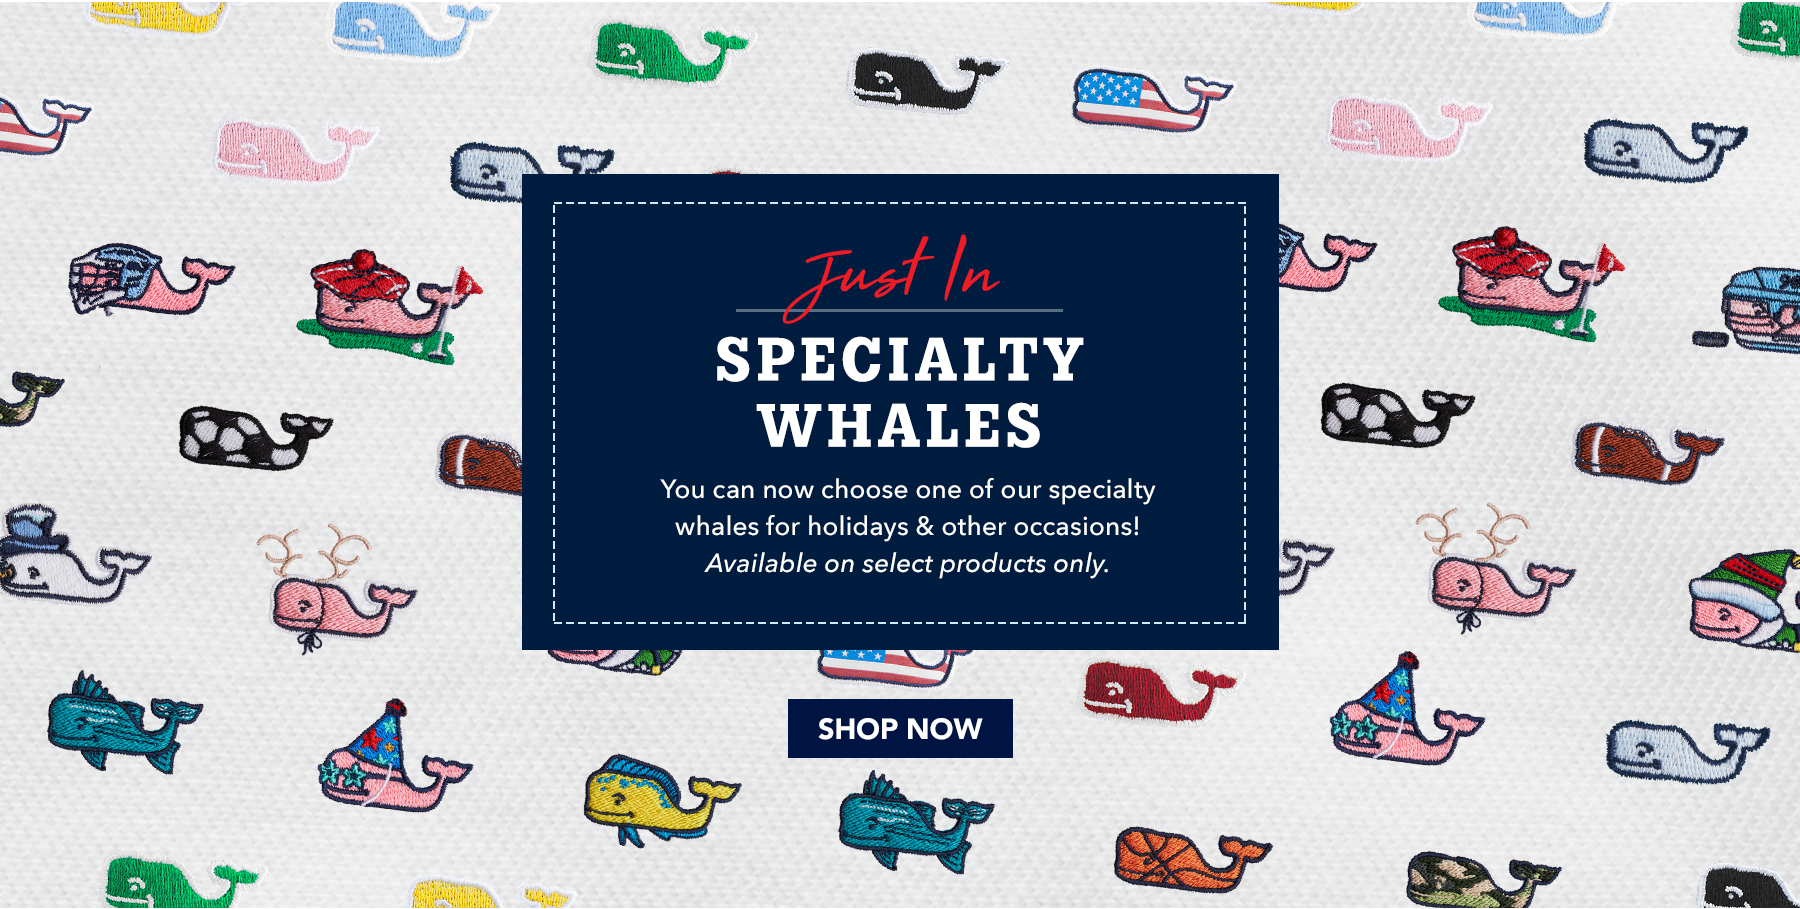 Just in specialty whales. You can now choose one of our specialty whales for holidays & other occasions. Avalable on select products only. Shop now.